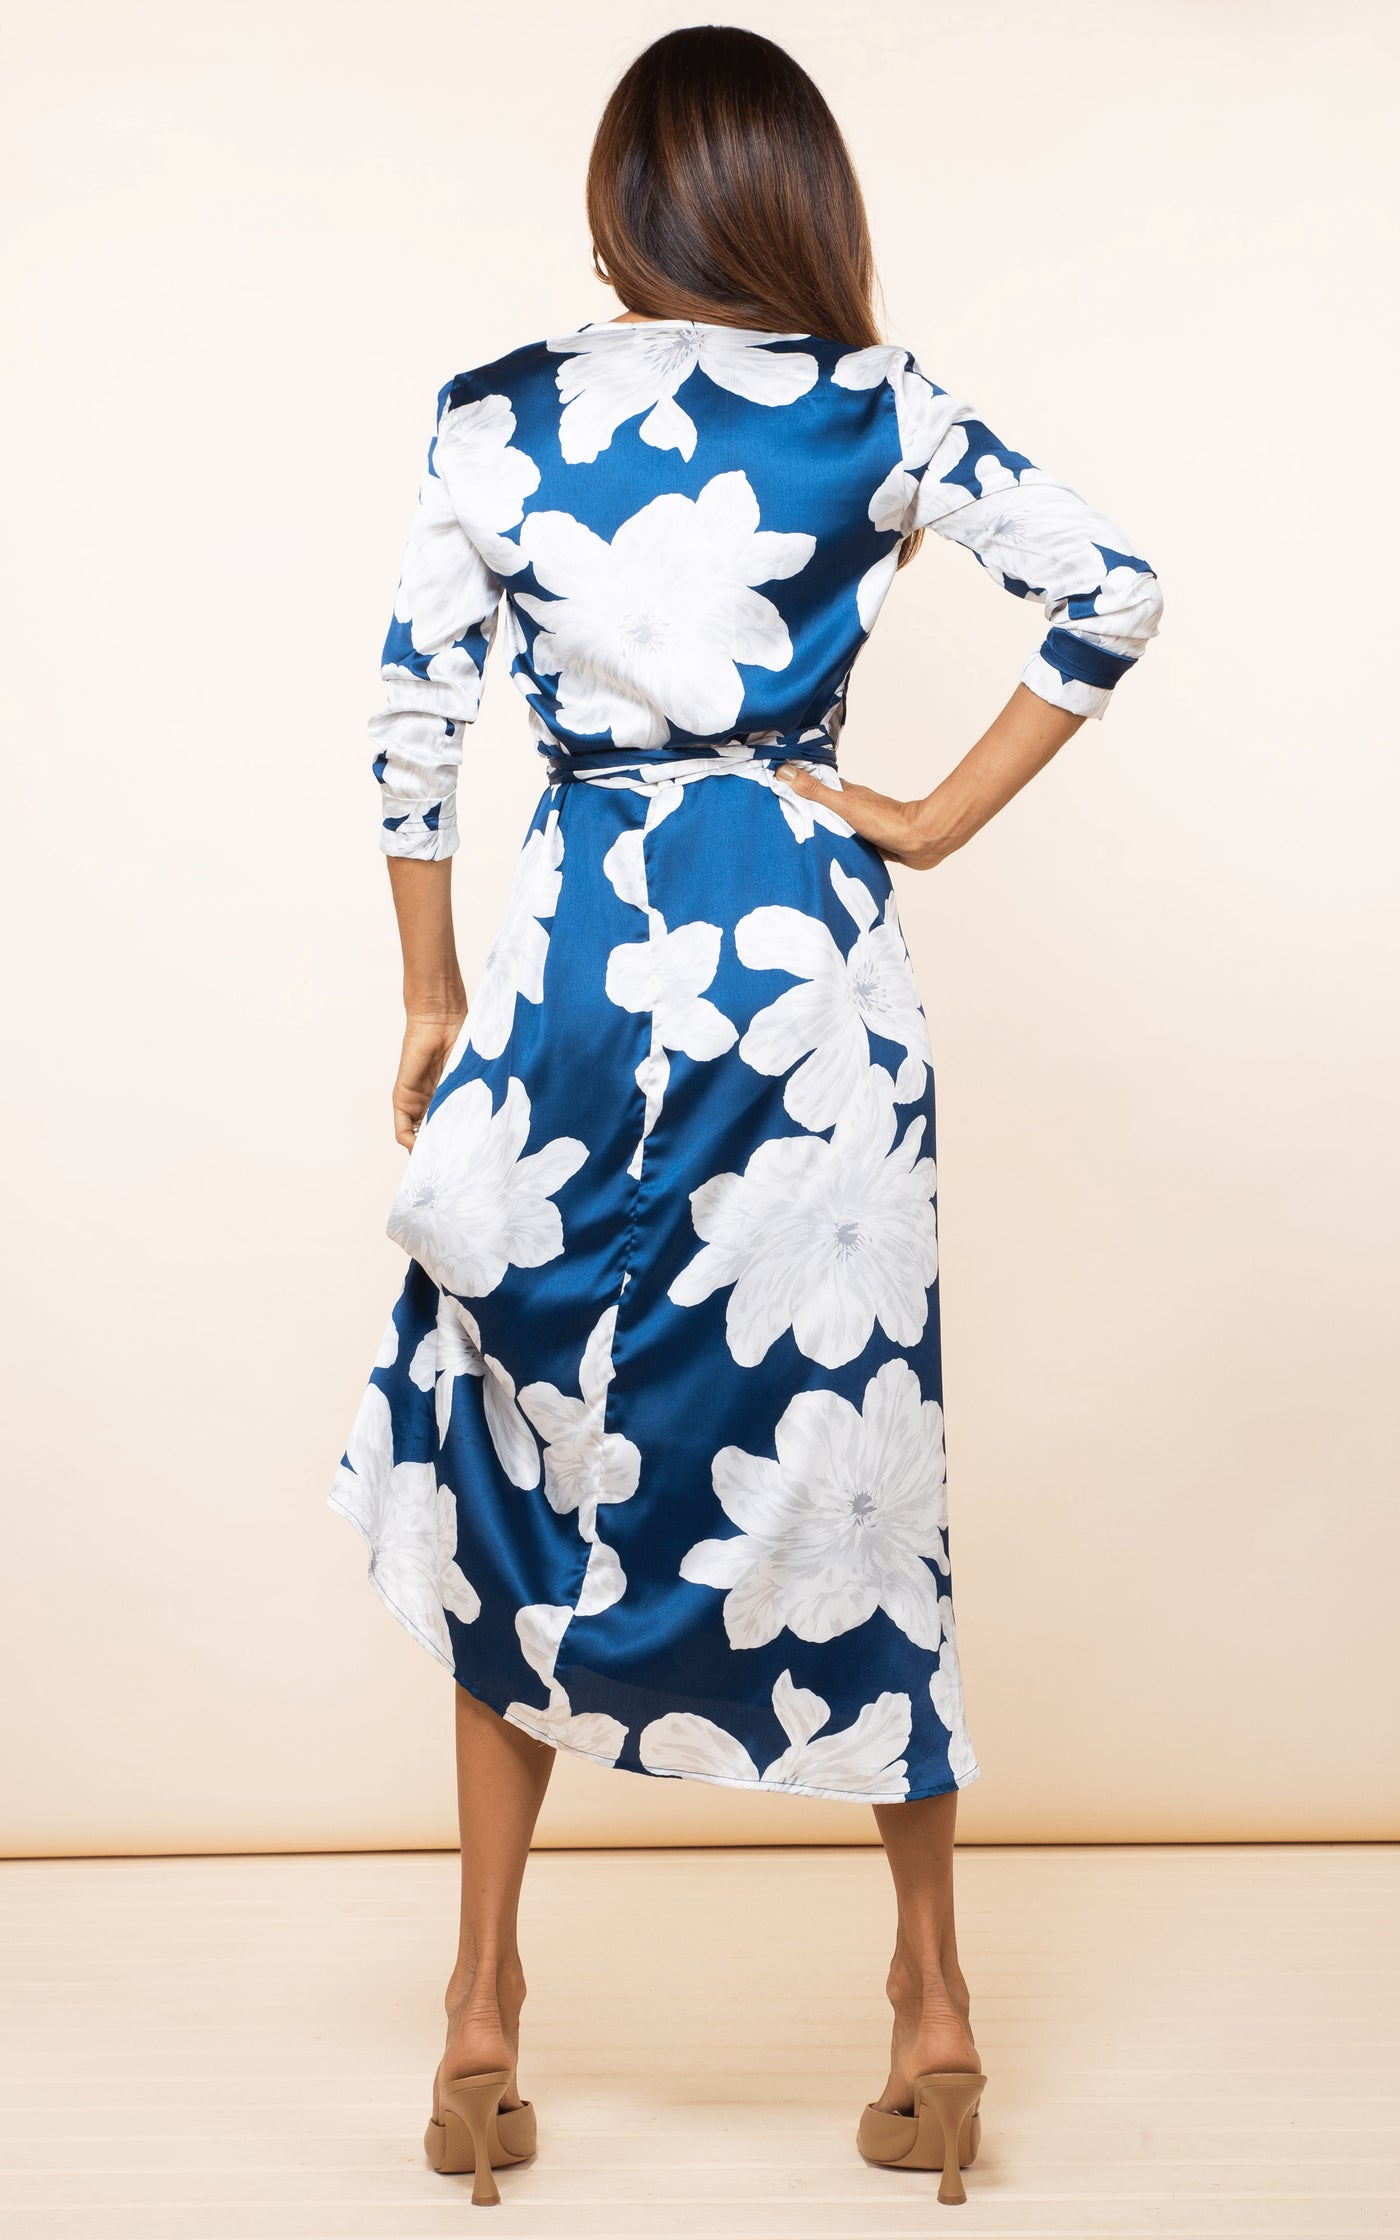 Backward-facing model wears Dancing Leopard Yondal Dress in navy and white floral print